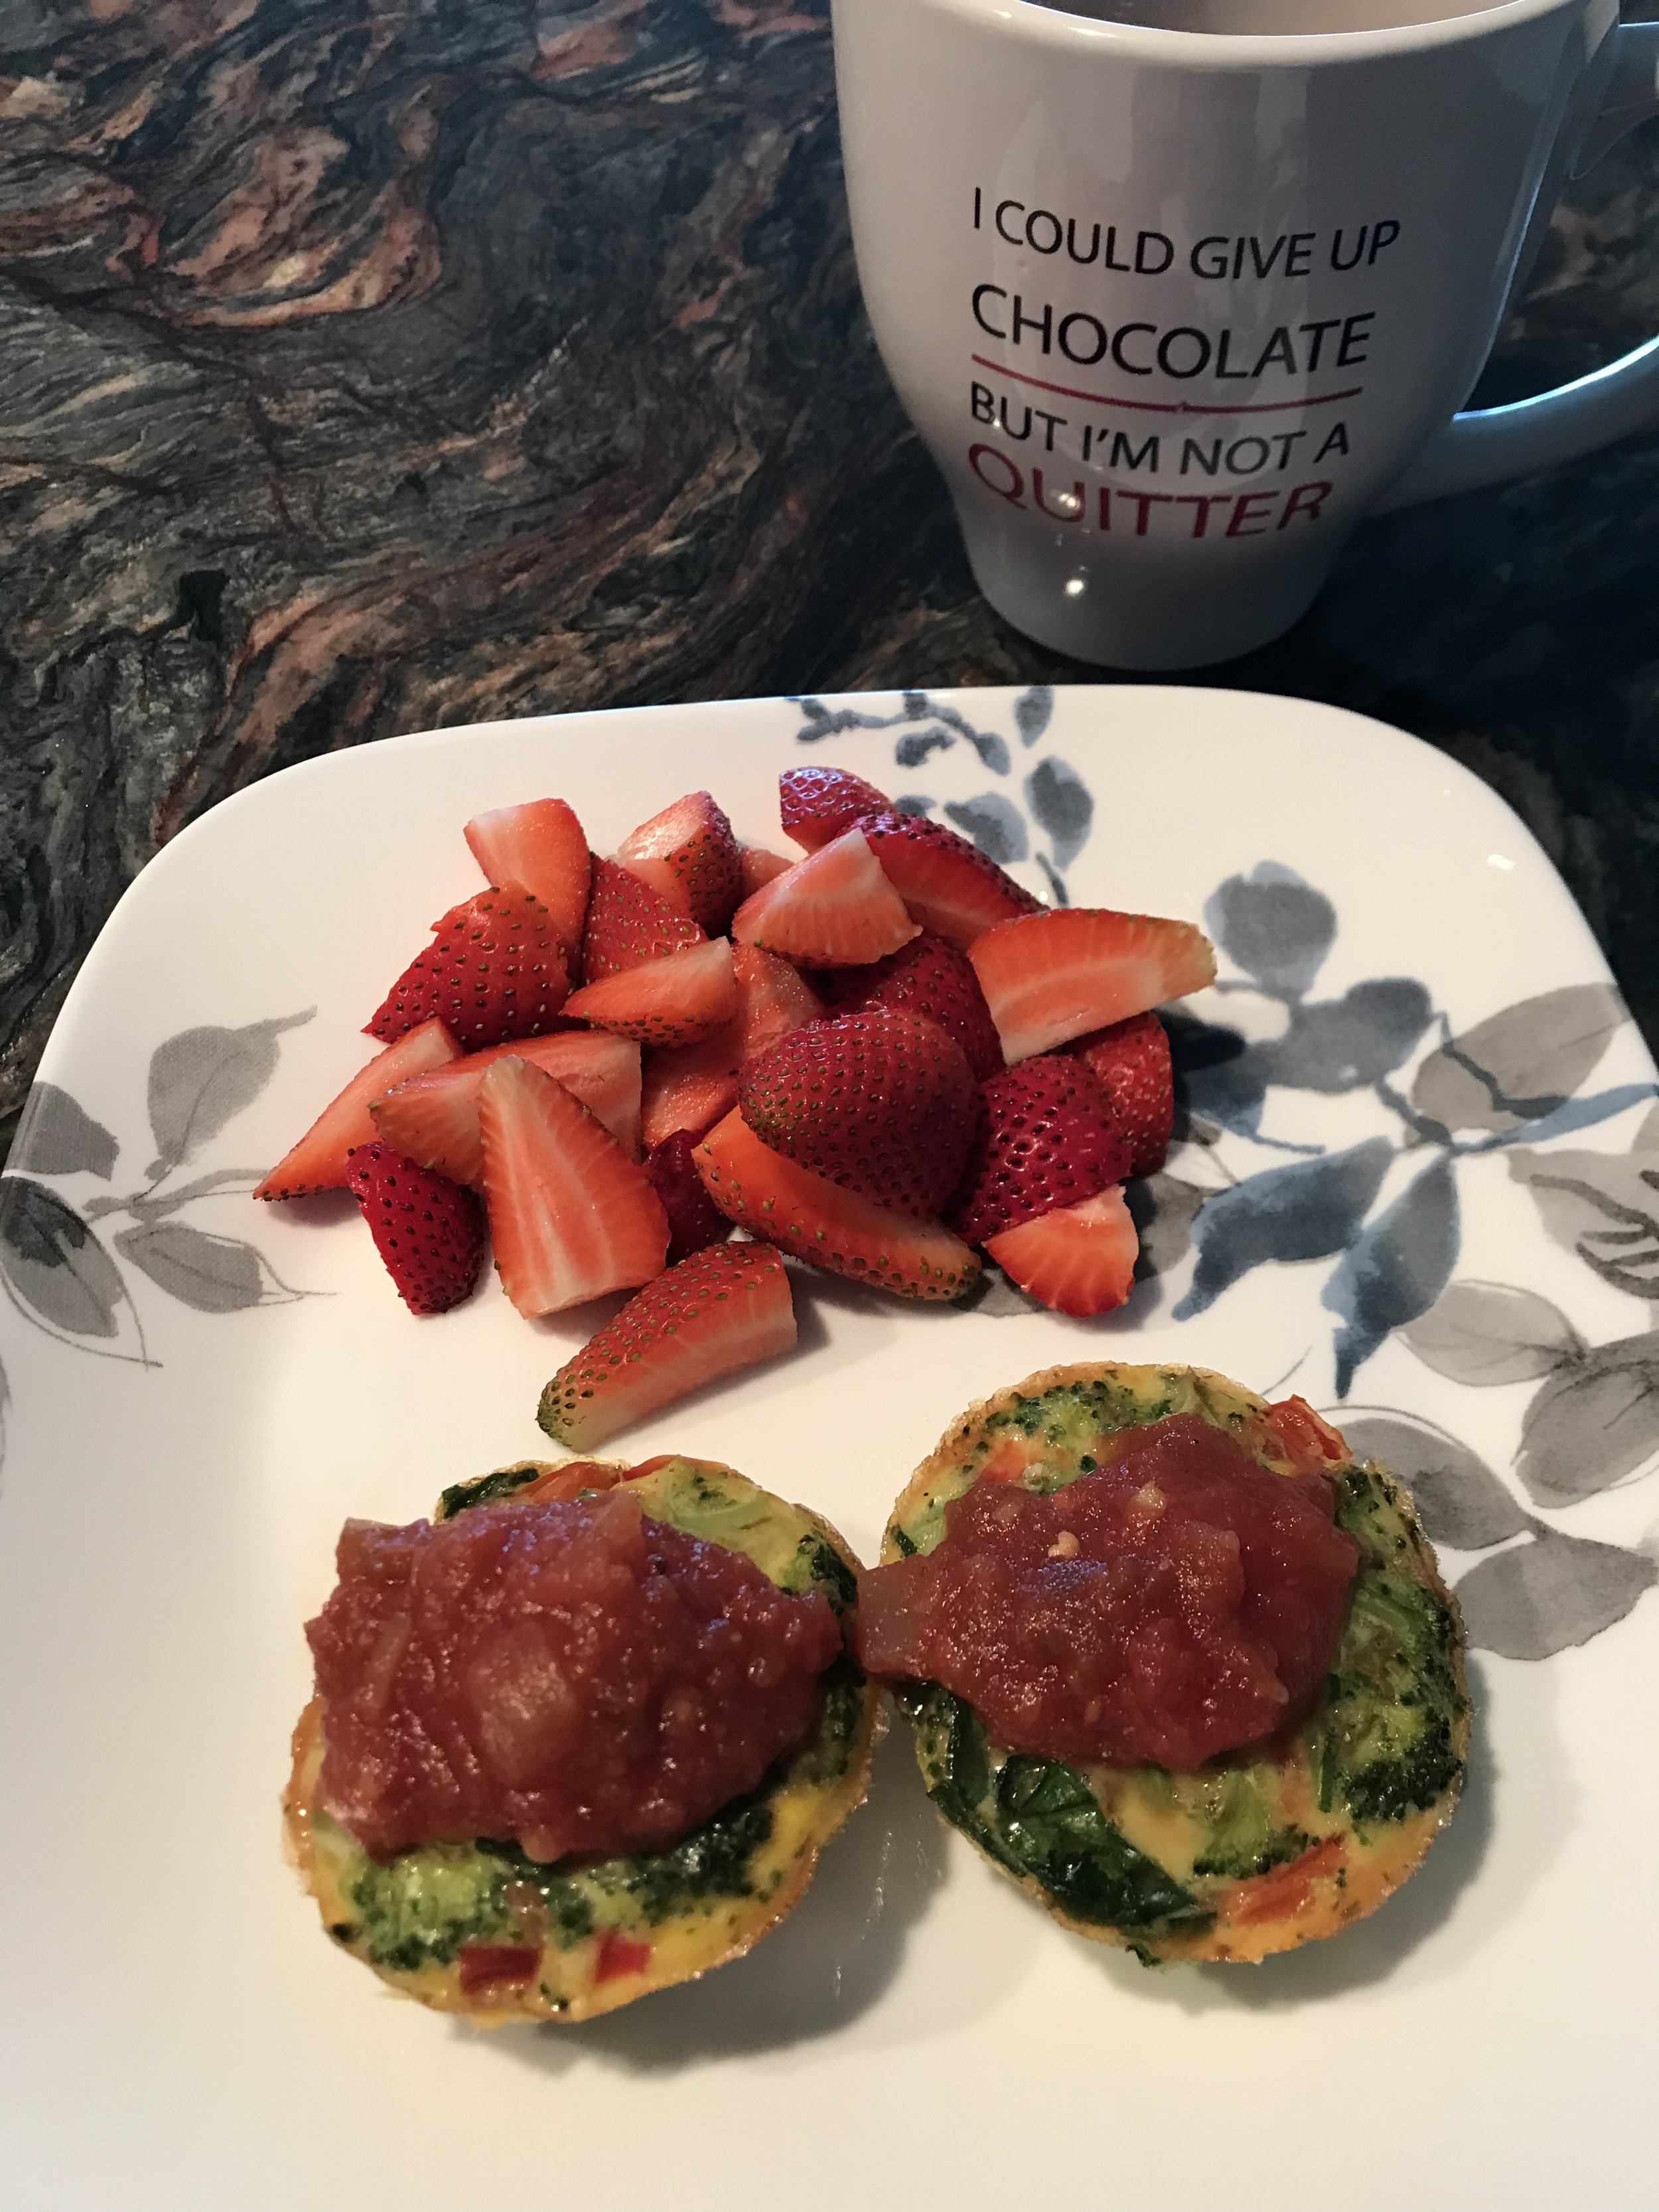 BREAKFAST - Fixate Vegetable Egg Cups with Salsa and a side of Strawberries.